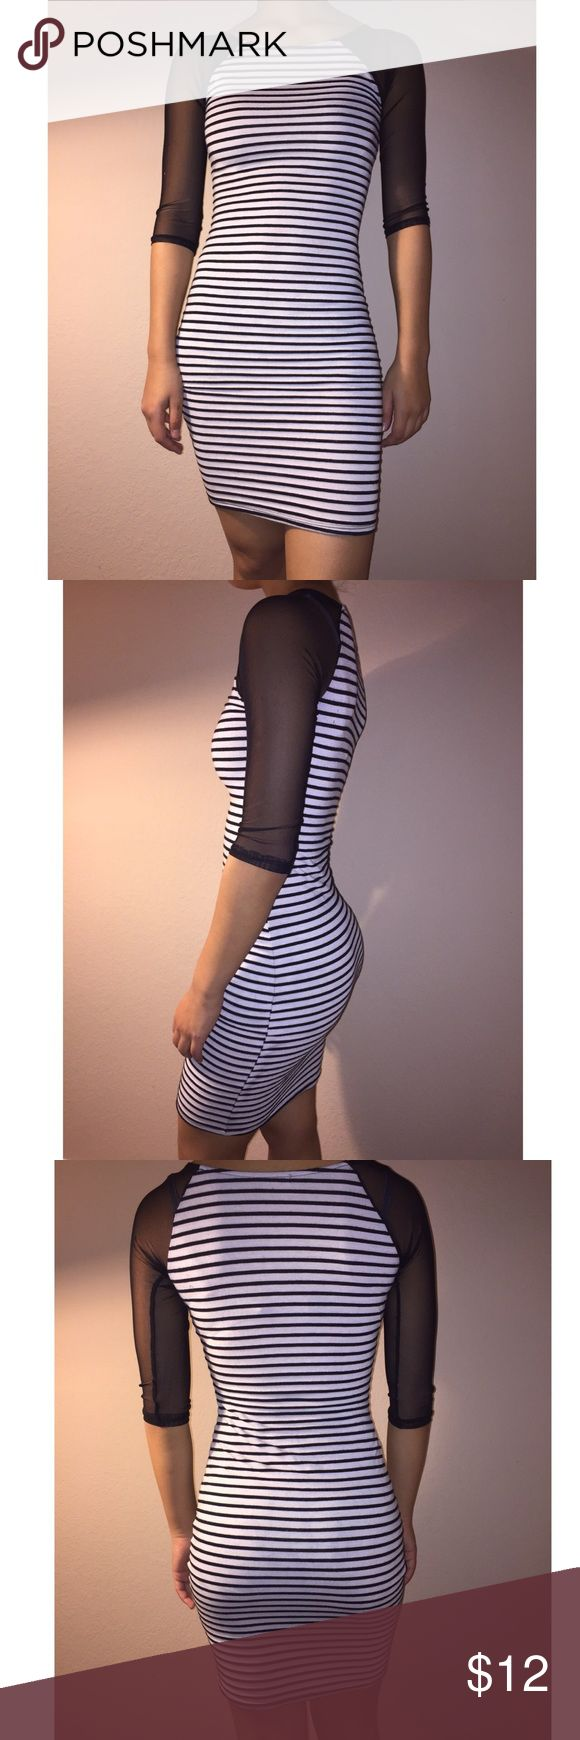 Striped Bodycon Dress Horizontal b&w striped dress.. bodycon/fitted with mesh sleeves.. very comfortable, great for a night out! Dresses